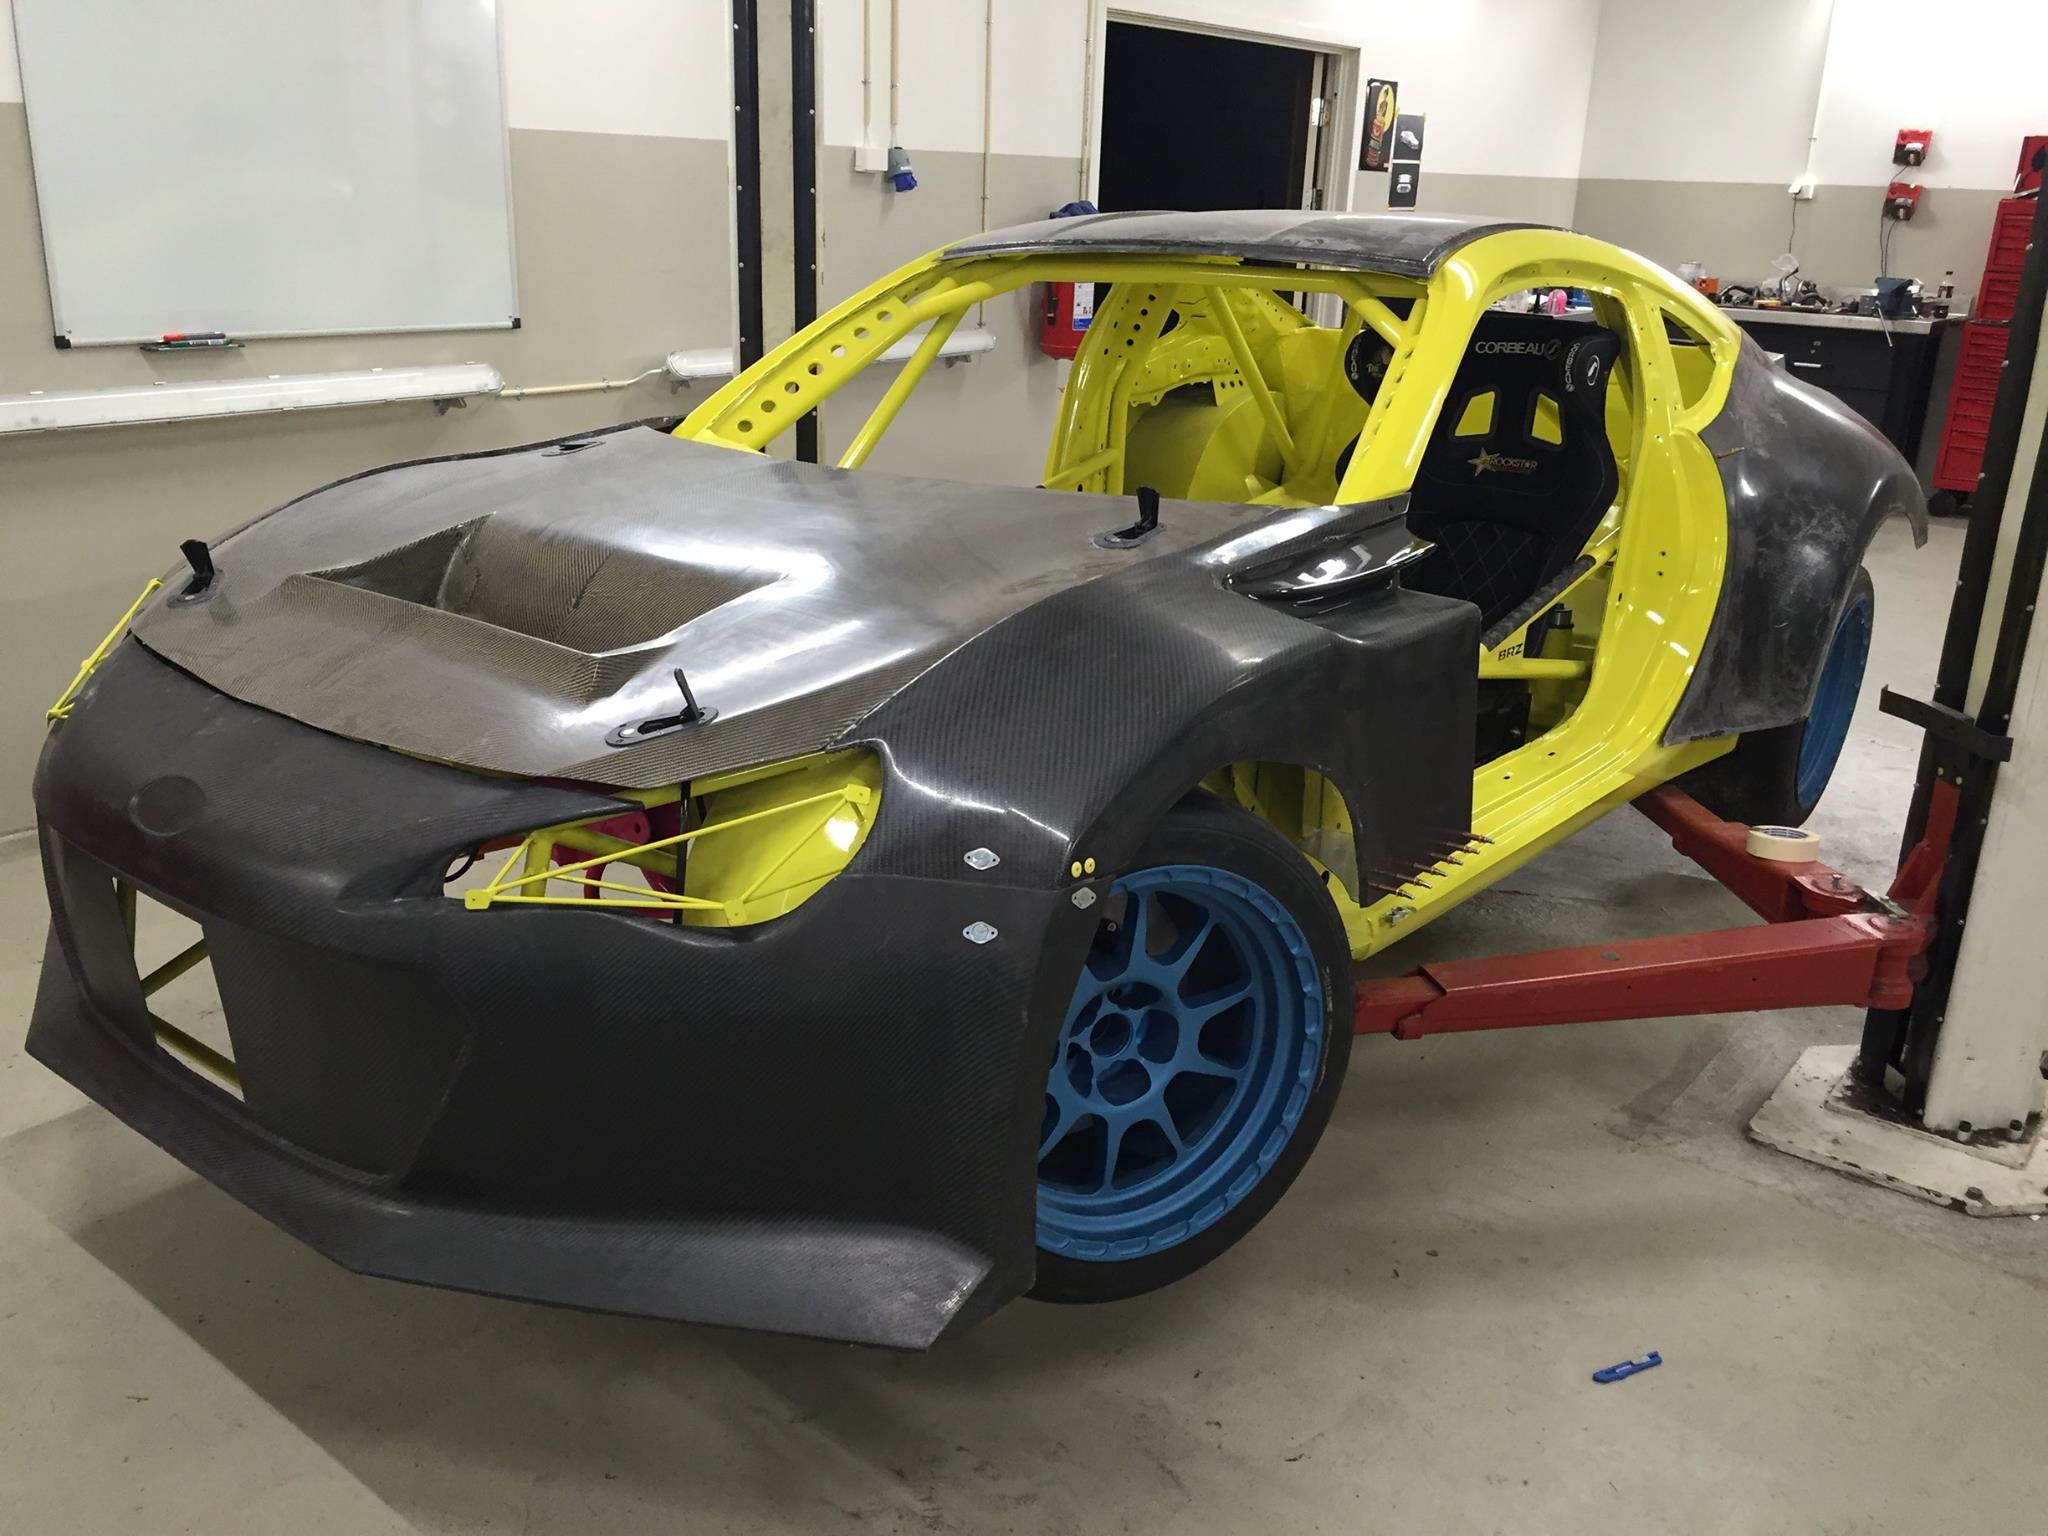 Team Yellow Drift And Racing In Rakkestad Norway Is Building One Mean Subaru BRZ For Time Attack The Purchased 2012 RA New From Japan